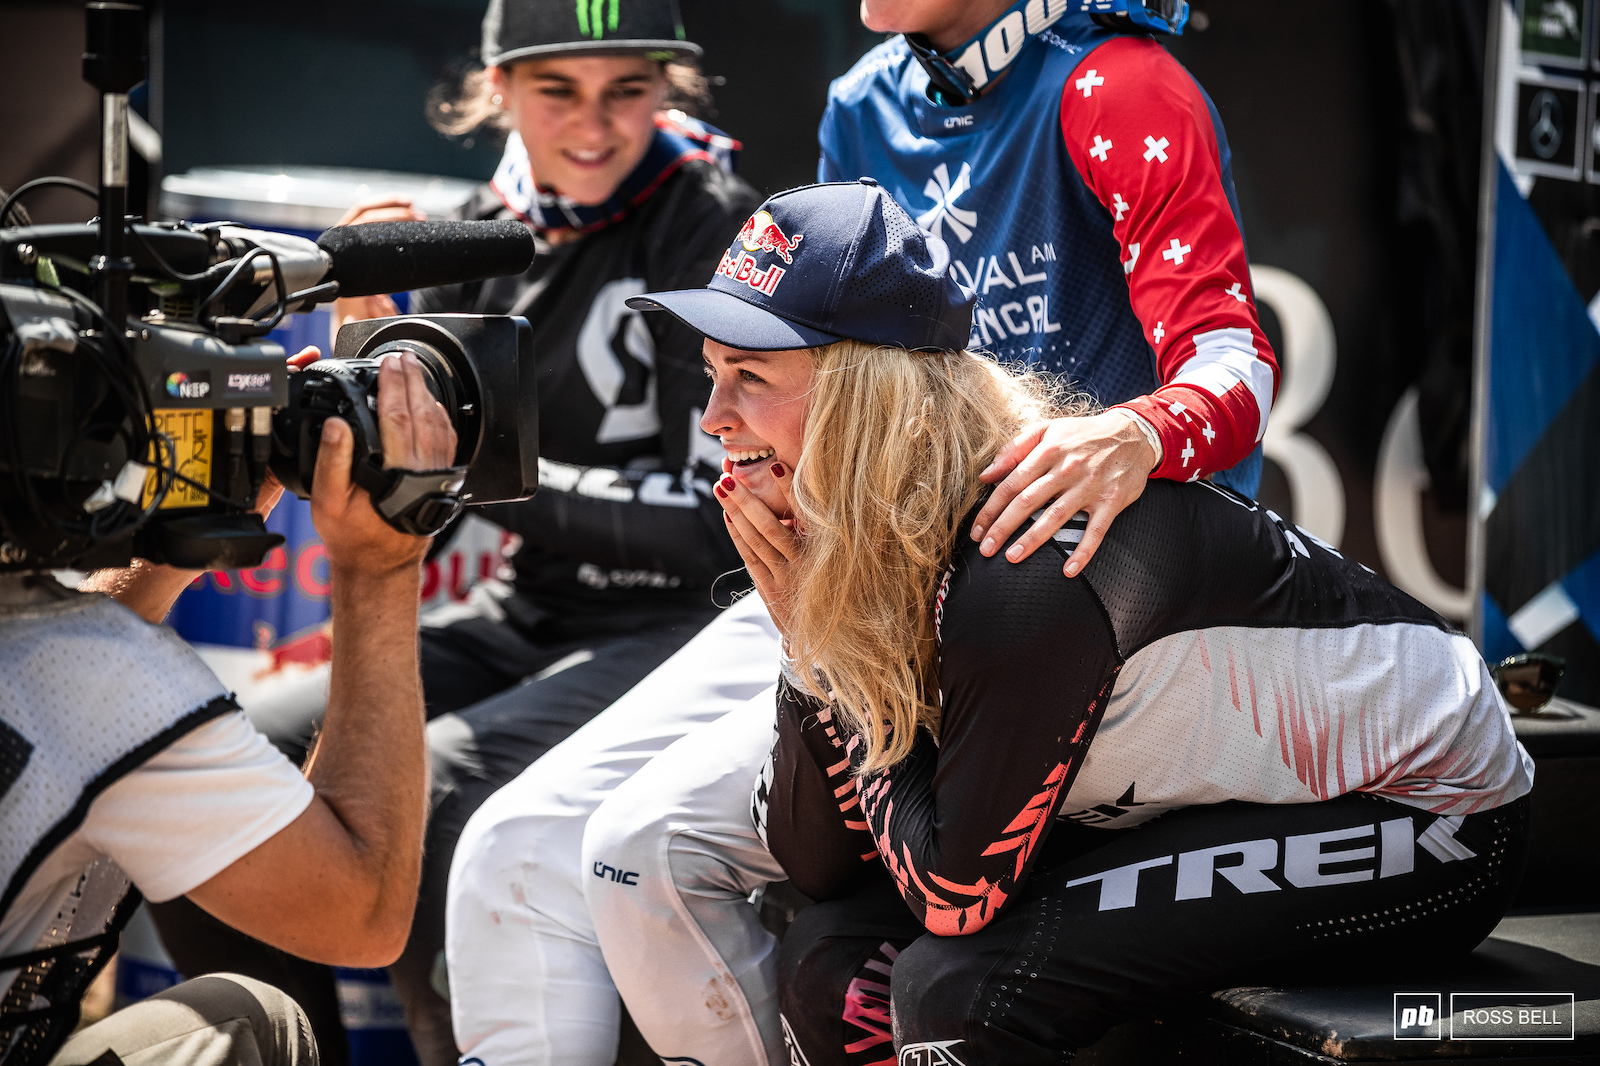 Disbelief. Vali Holl hasn t had the season her or anyone expected but she s kept working away and was rewarded today.